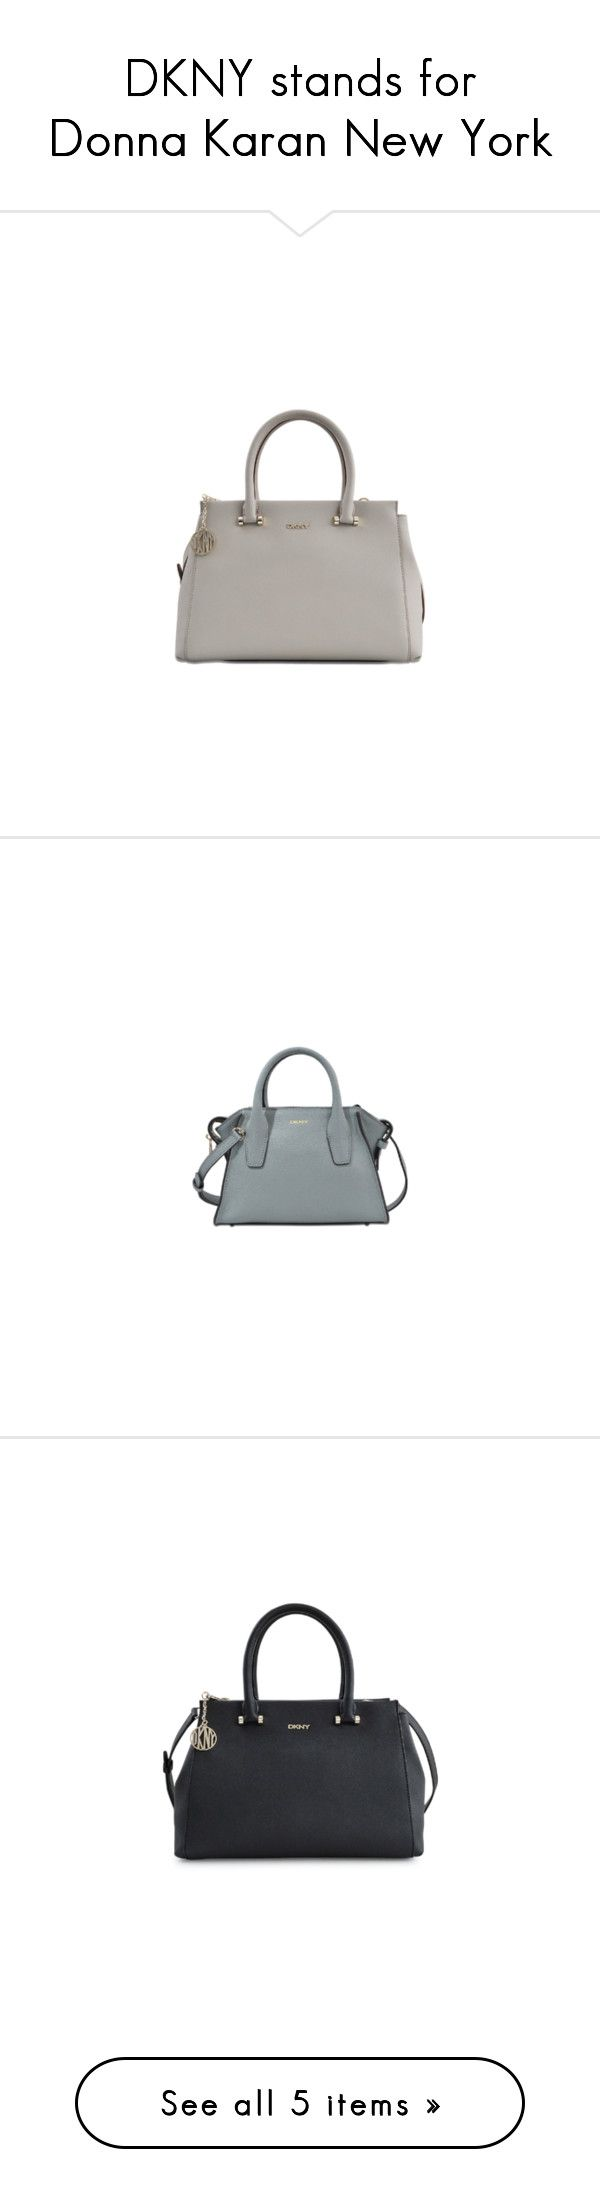 """DKNY stands for Donna Karan New York"" by rivlyb ❤ liked on Polyvore featuring dkny, bags, handbags, brown handbags, studded purse, studded handbags, zipper purse, mini purse, blue studded purse and dkny handbags"